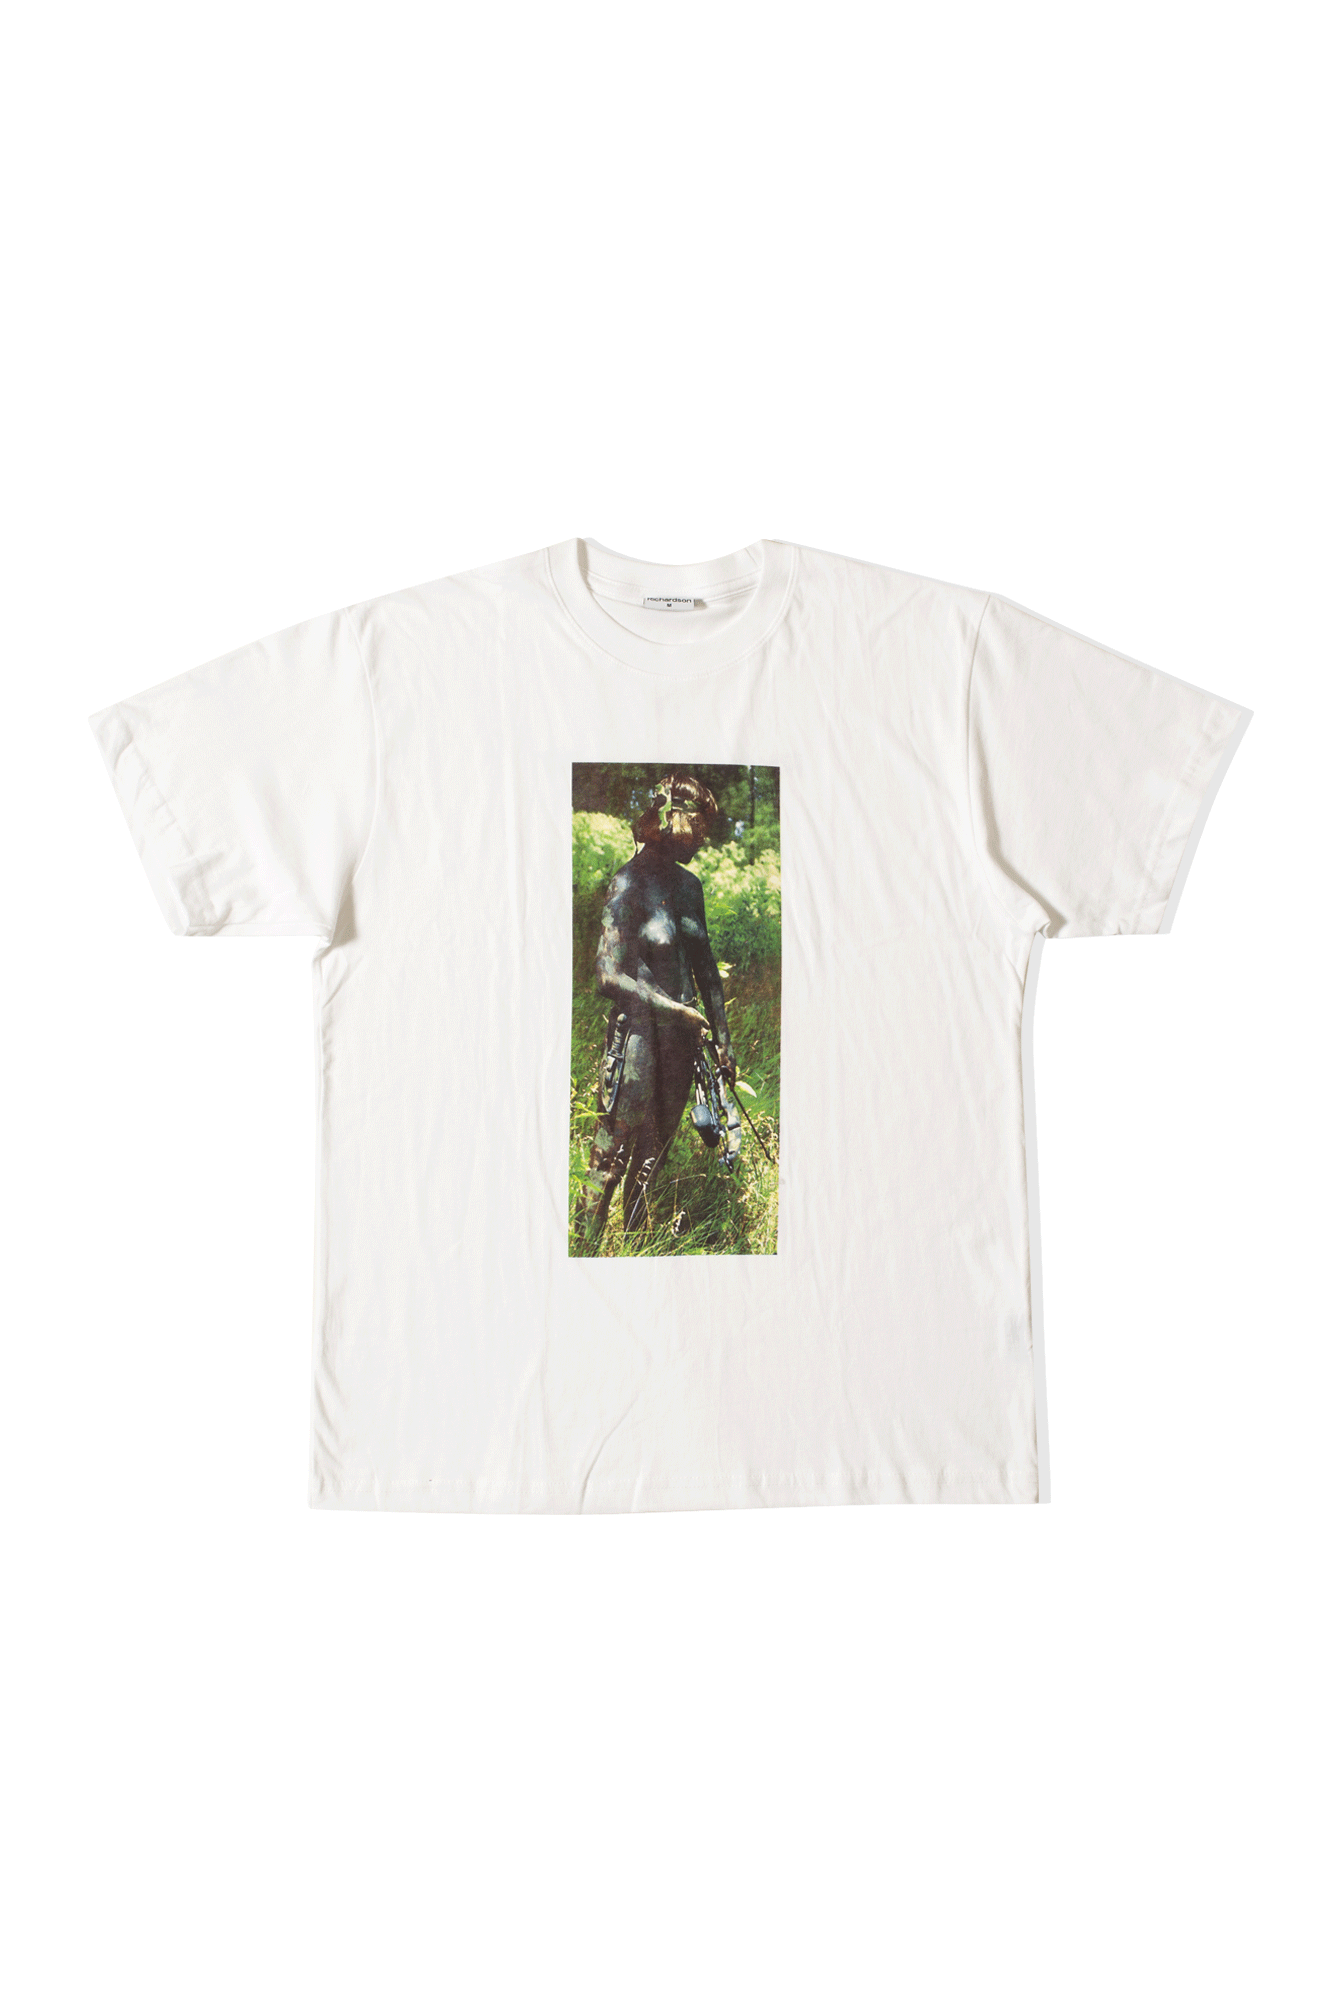 Richardson A7 Richard Prince T-Shirt White